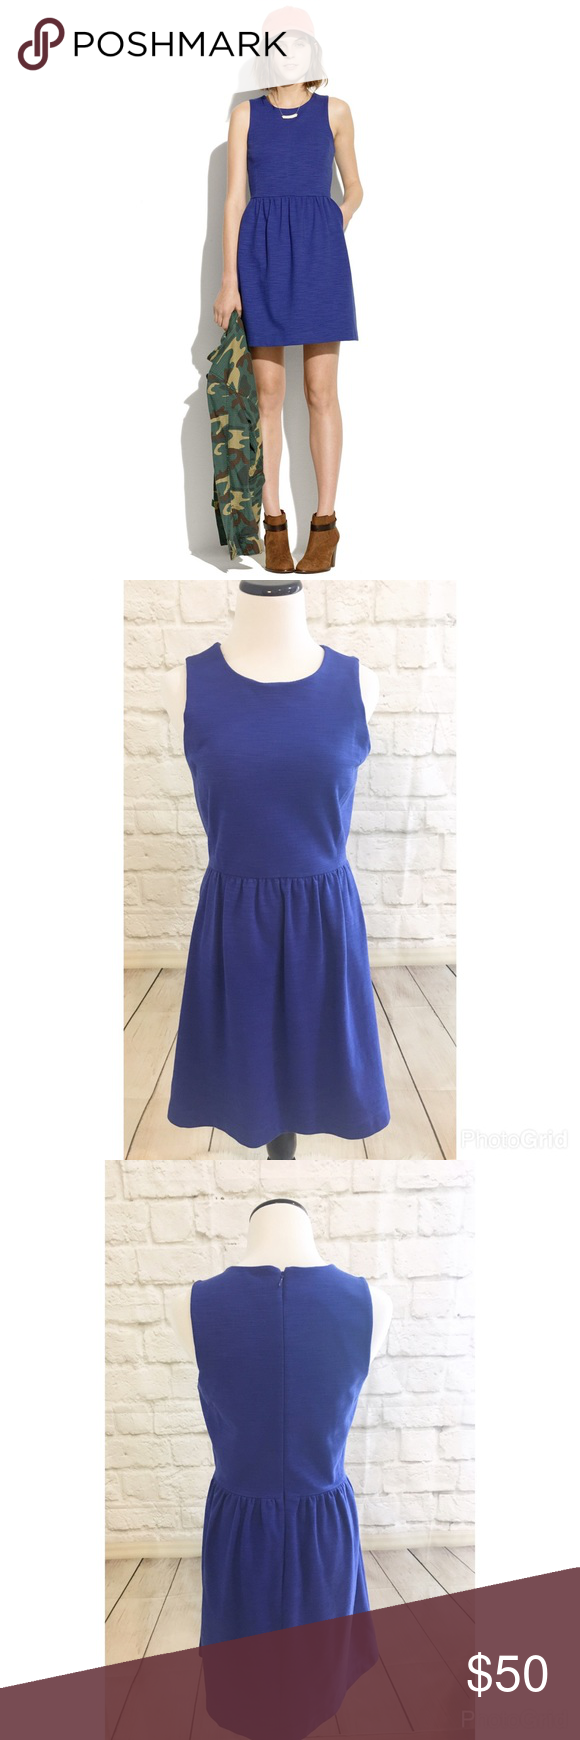 "Madewell afternoon dress Gorgeous blue color, and thick ponte knit fabric make this the perfect dress. Super comfortable and flattering fit and flare style, with pockets! Size small, great condition, gently worn. No flaws. Bust 17"" waist 14""  length 34"" Madewell Dresses"